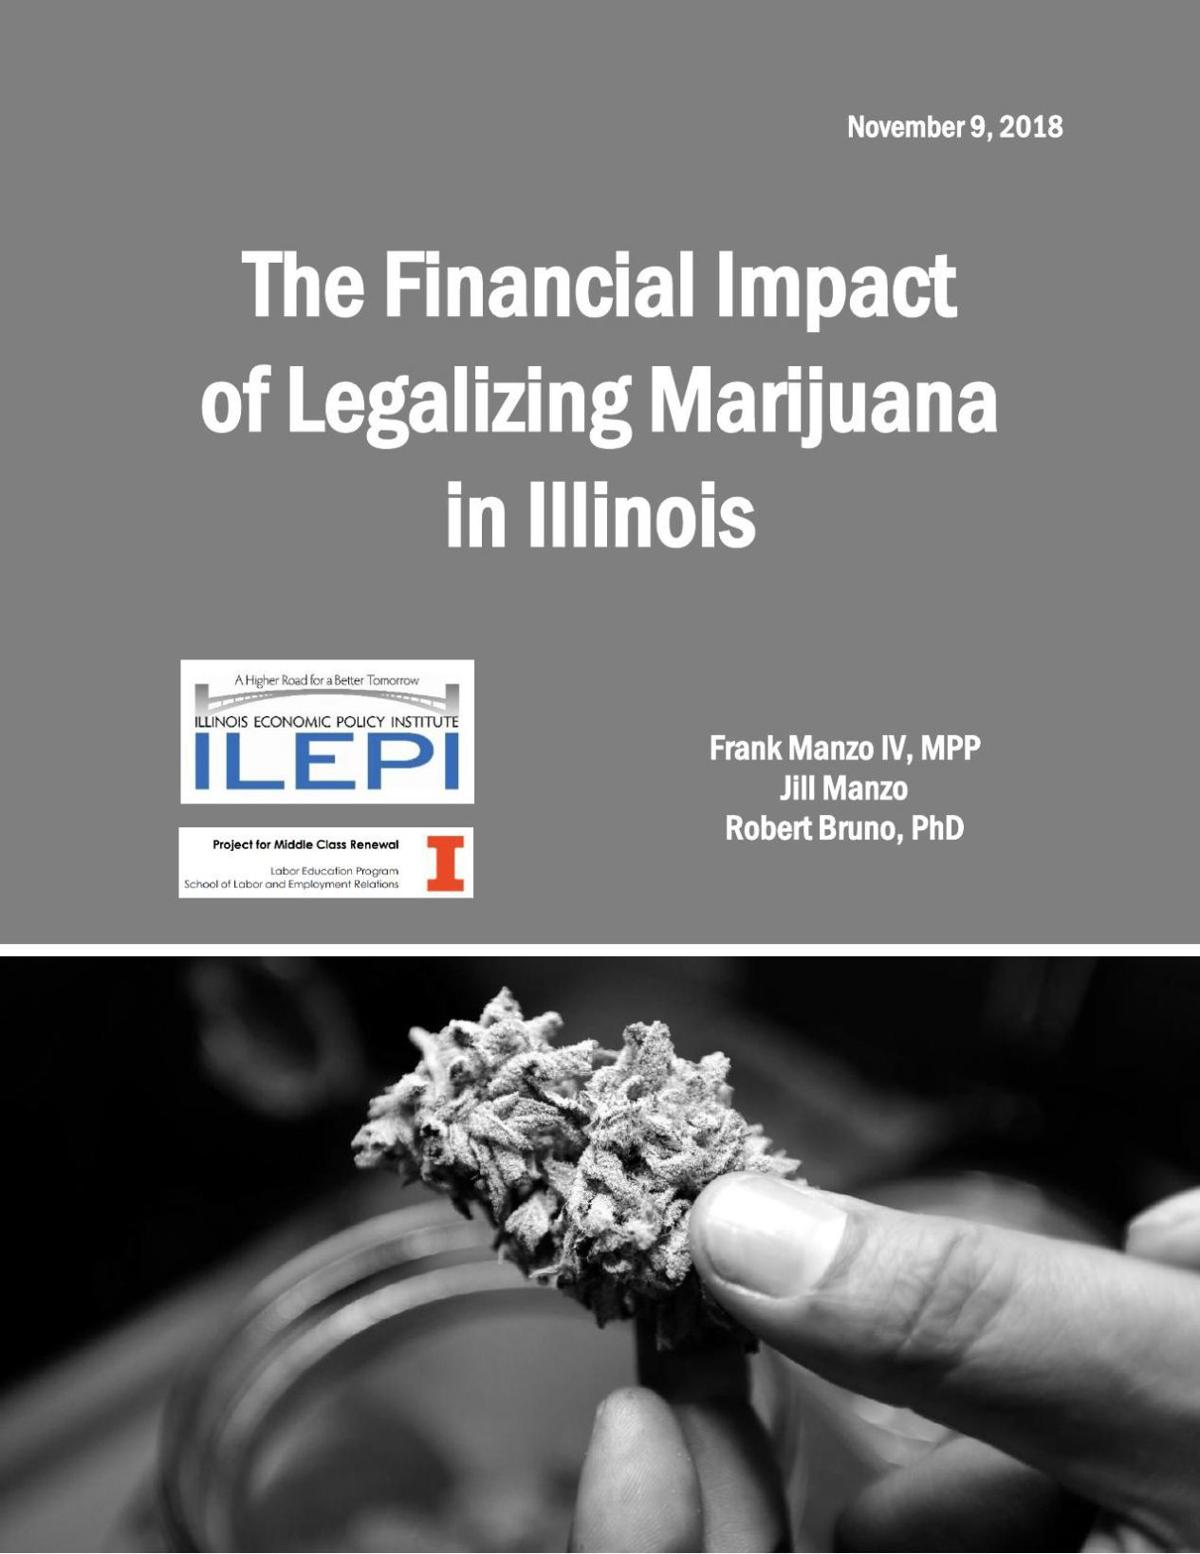 https://illinoisepi.files.wordpress.com/2018/11/ilepi-pmcr-financial-impact-of-legalizing-marijuana-in-illinois-final.pdf